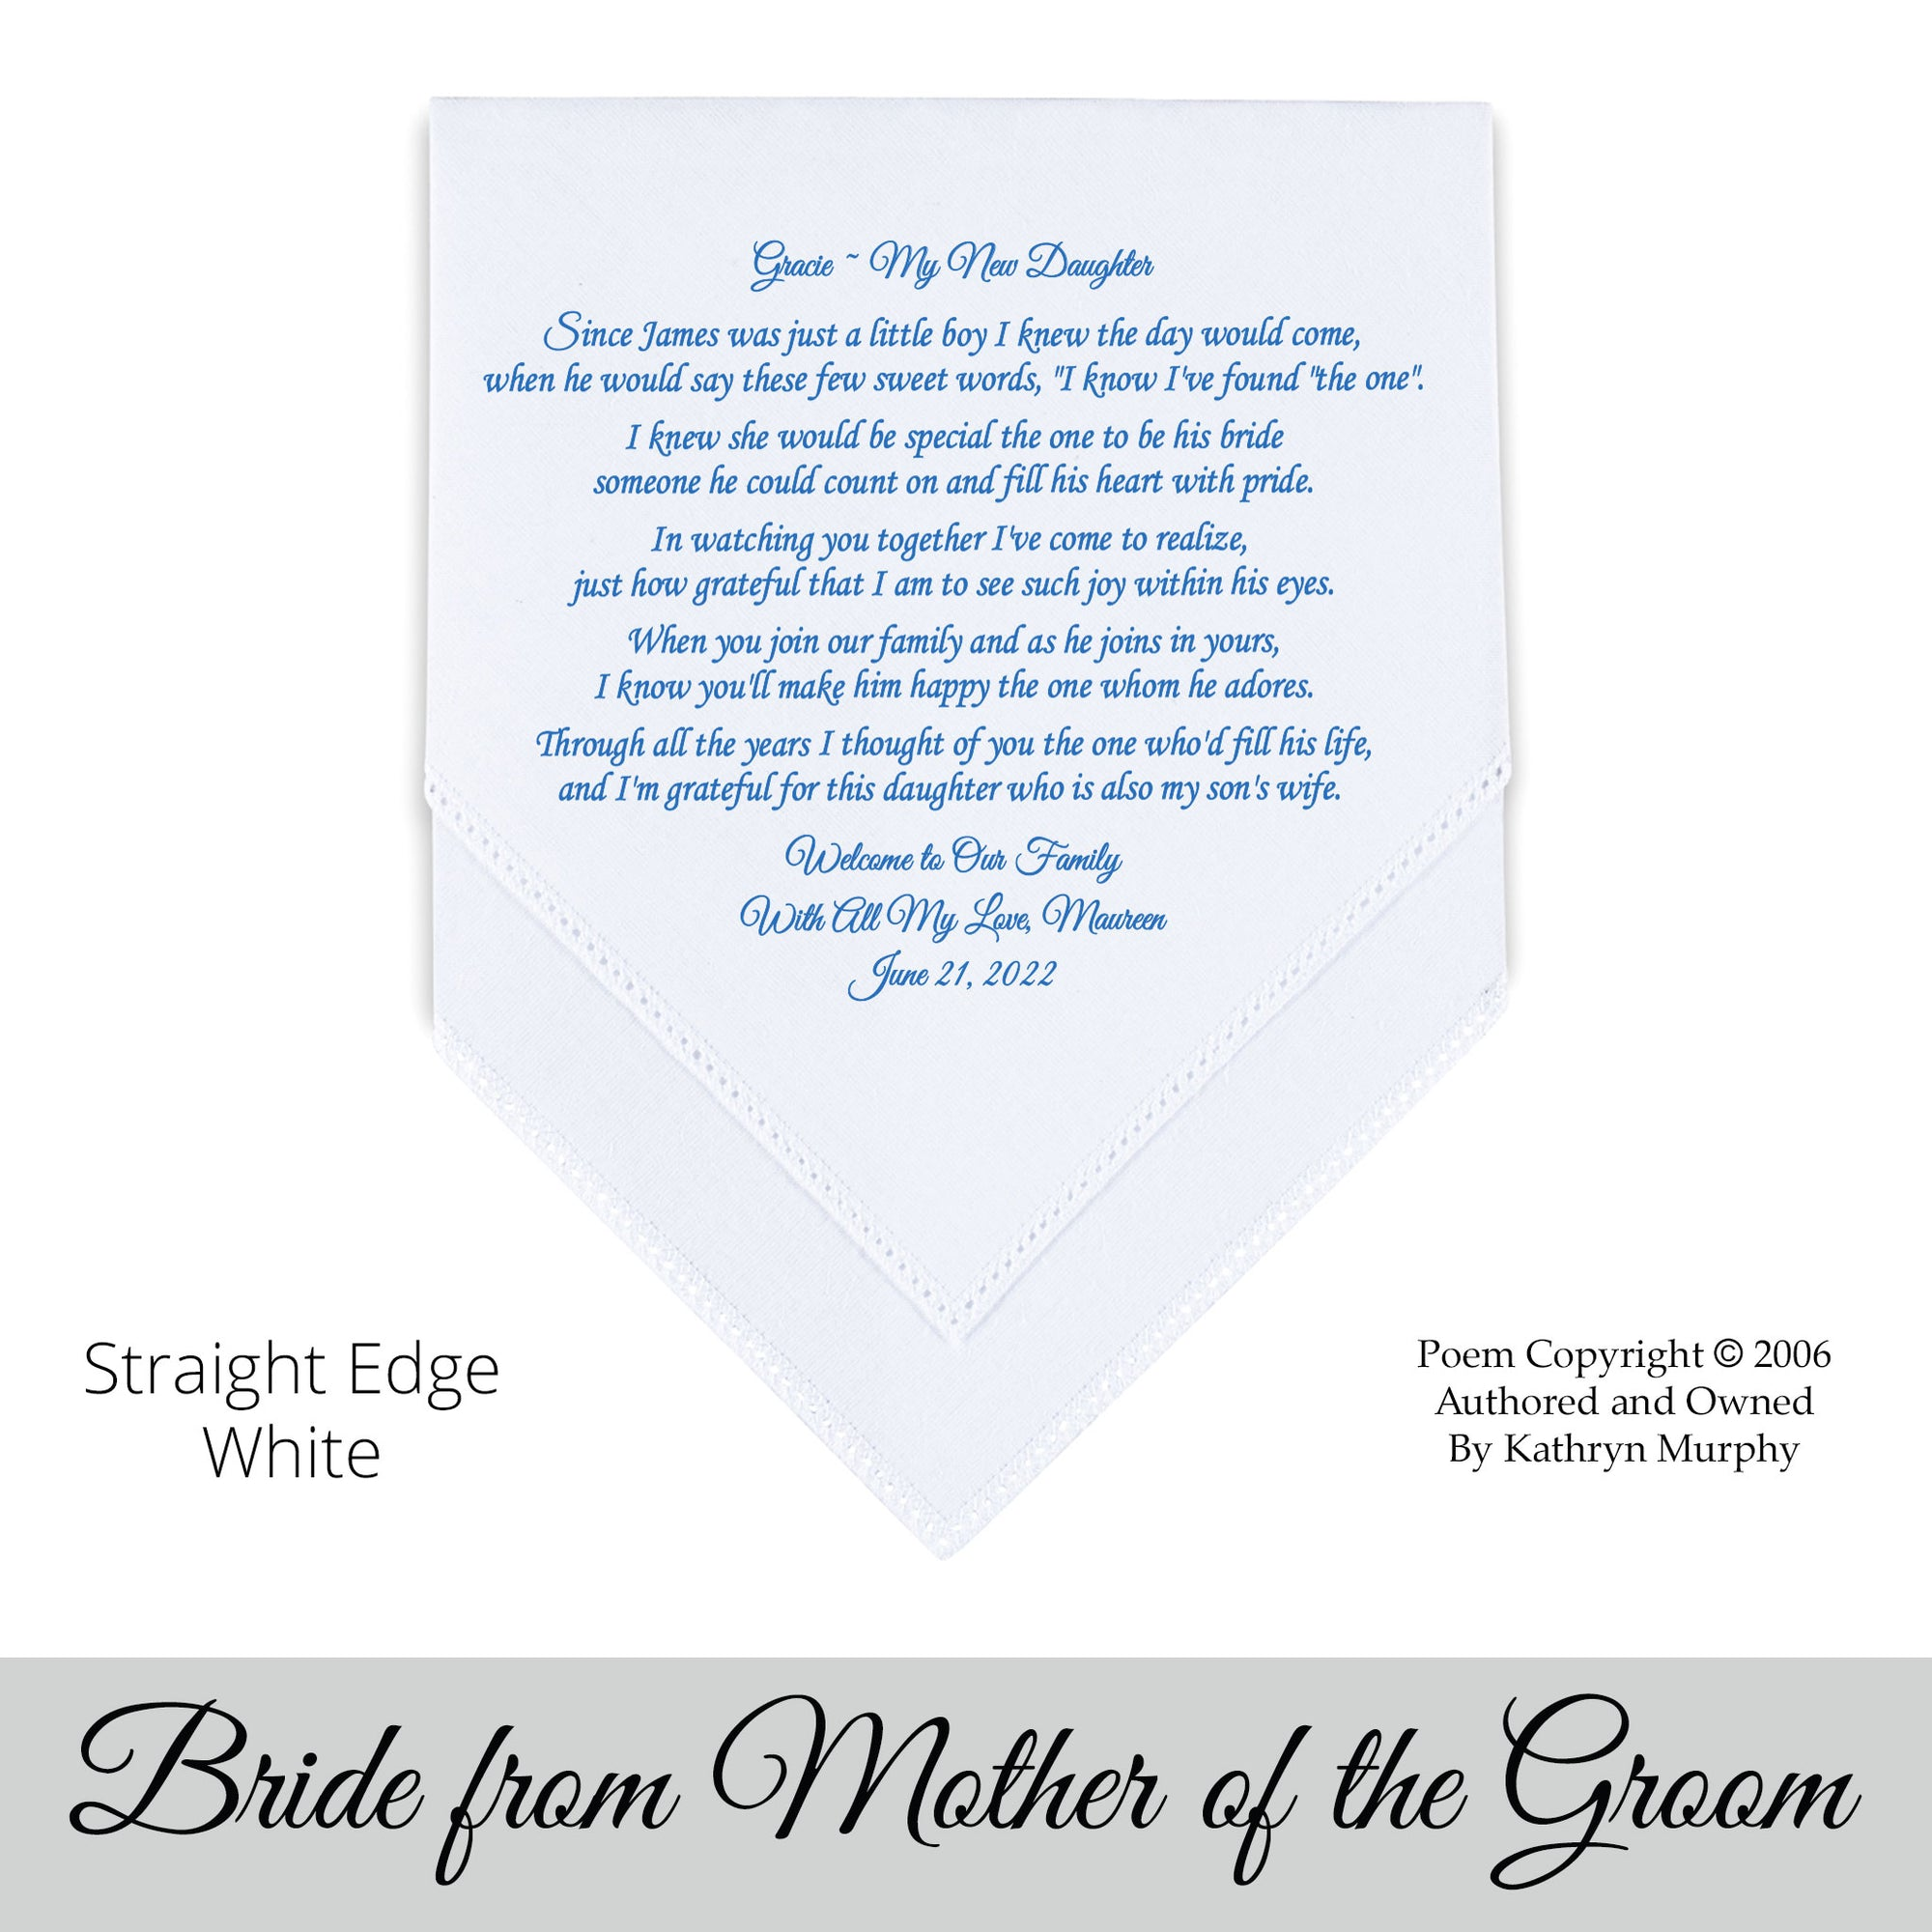 Wedding Poems For Bride And Groom: FOR The Bride From Her Groom's Family